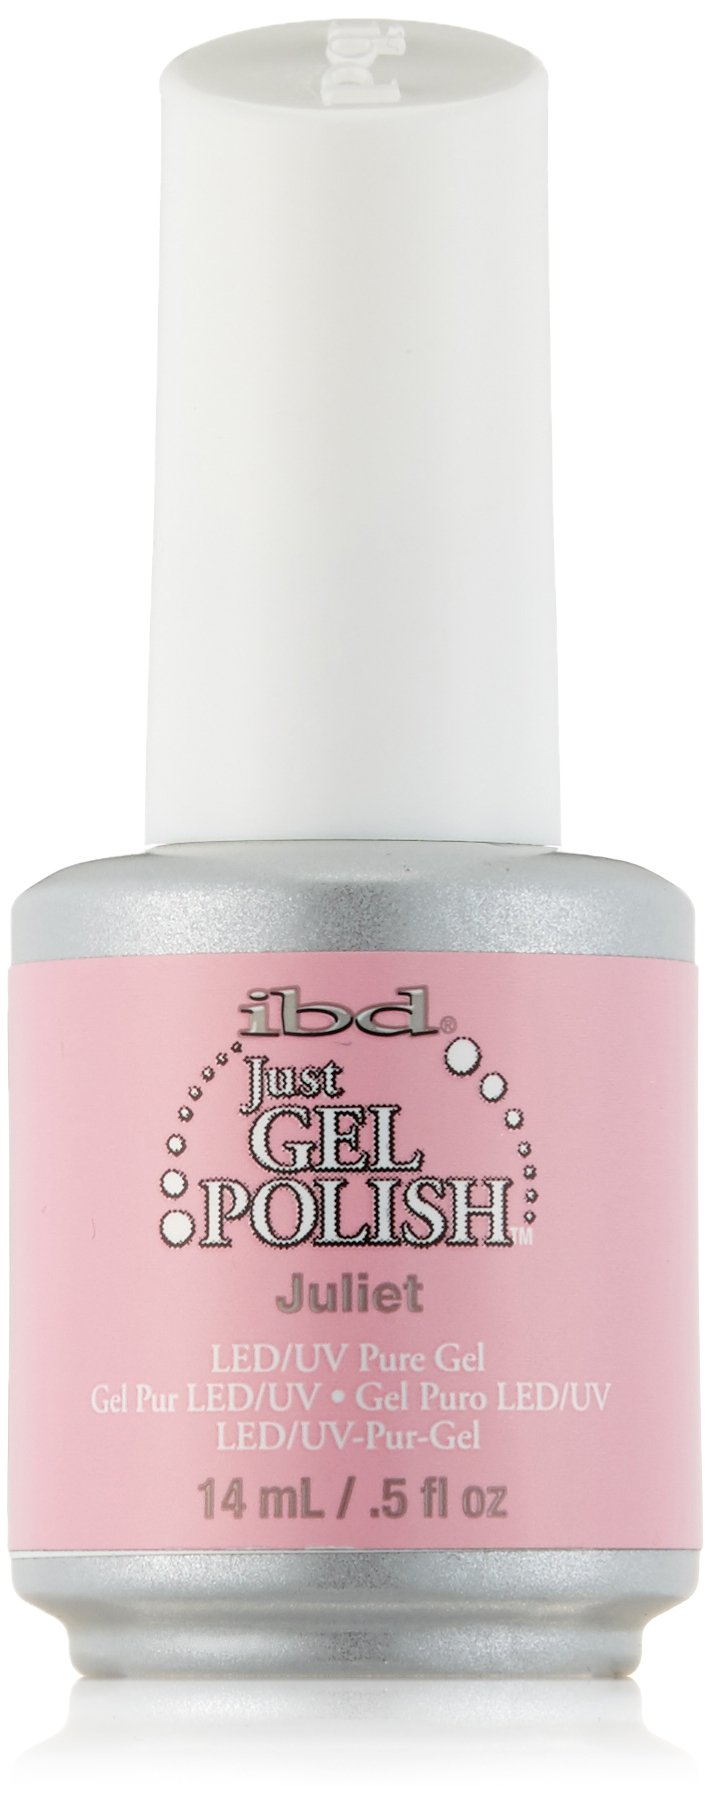 IBD Just Gel Nail Polish, Juliet, 0.5 Fluid Ounce